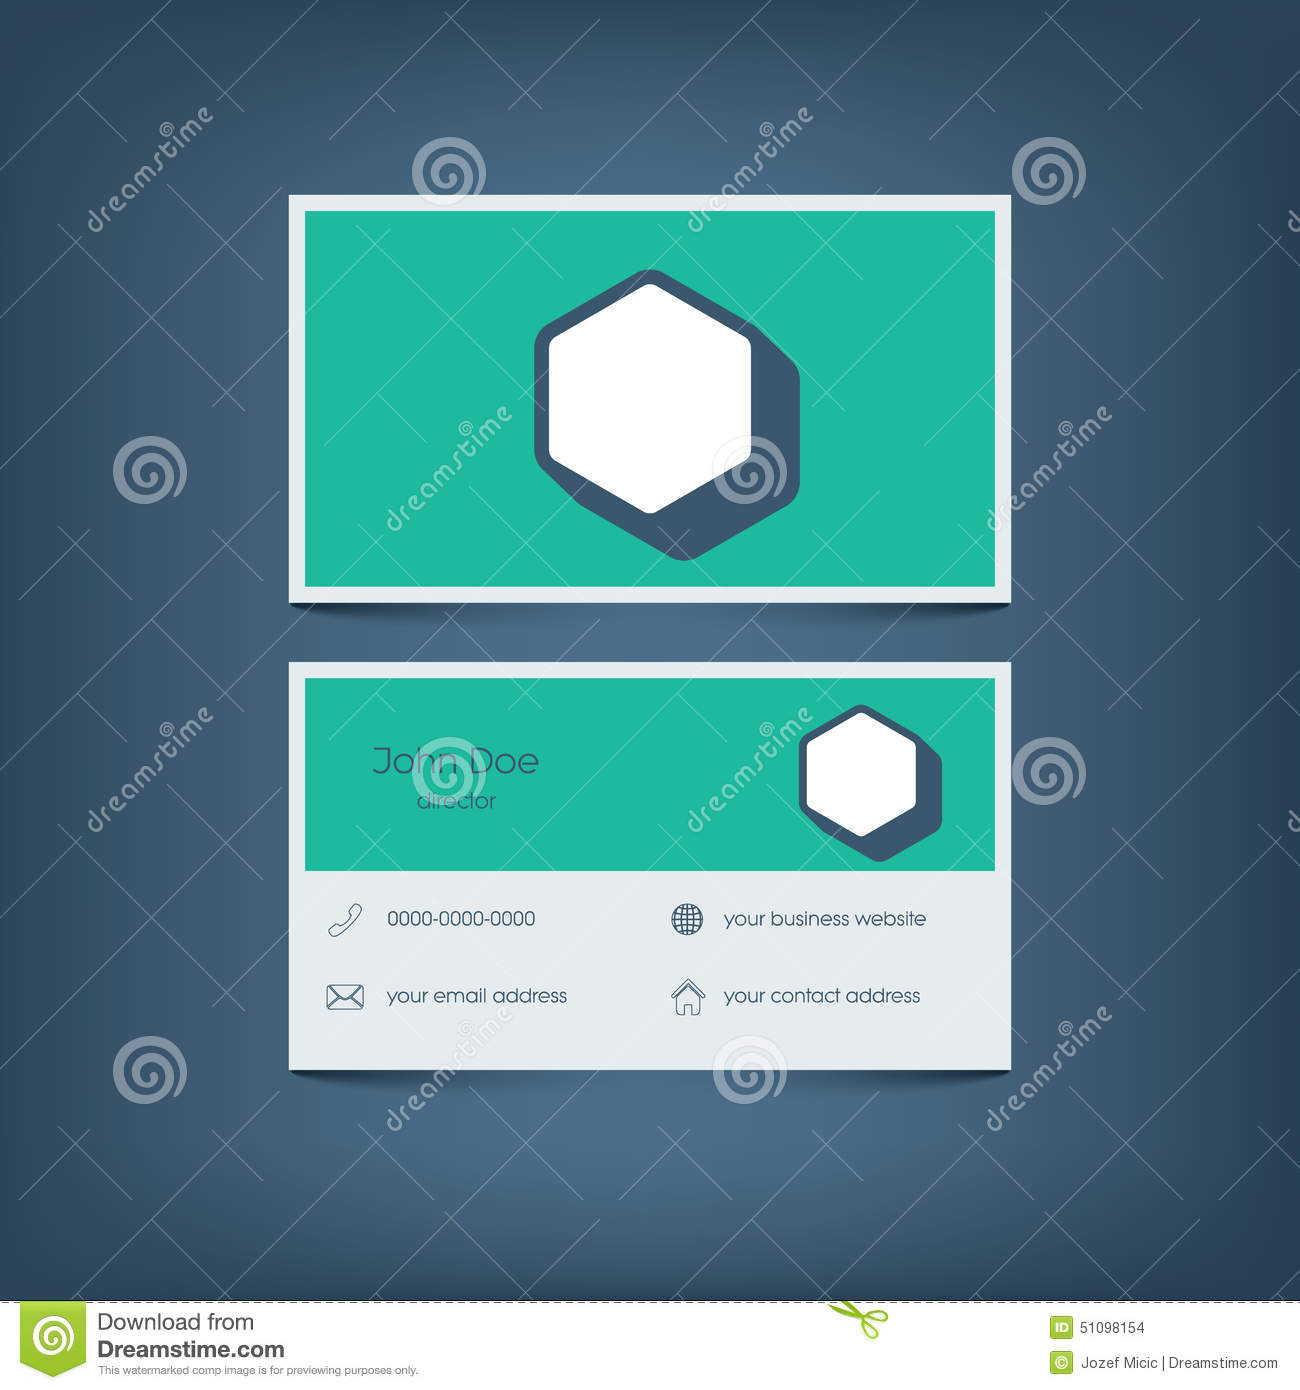 Modern flat design business card template graphic stock for Modern flat design